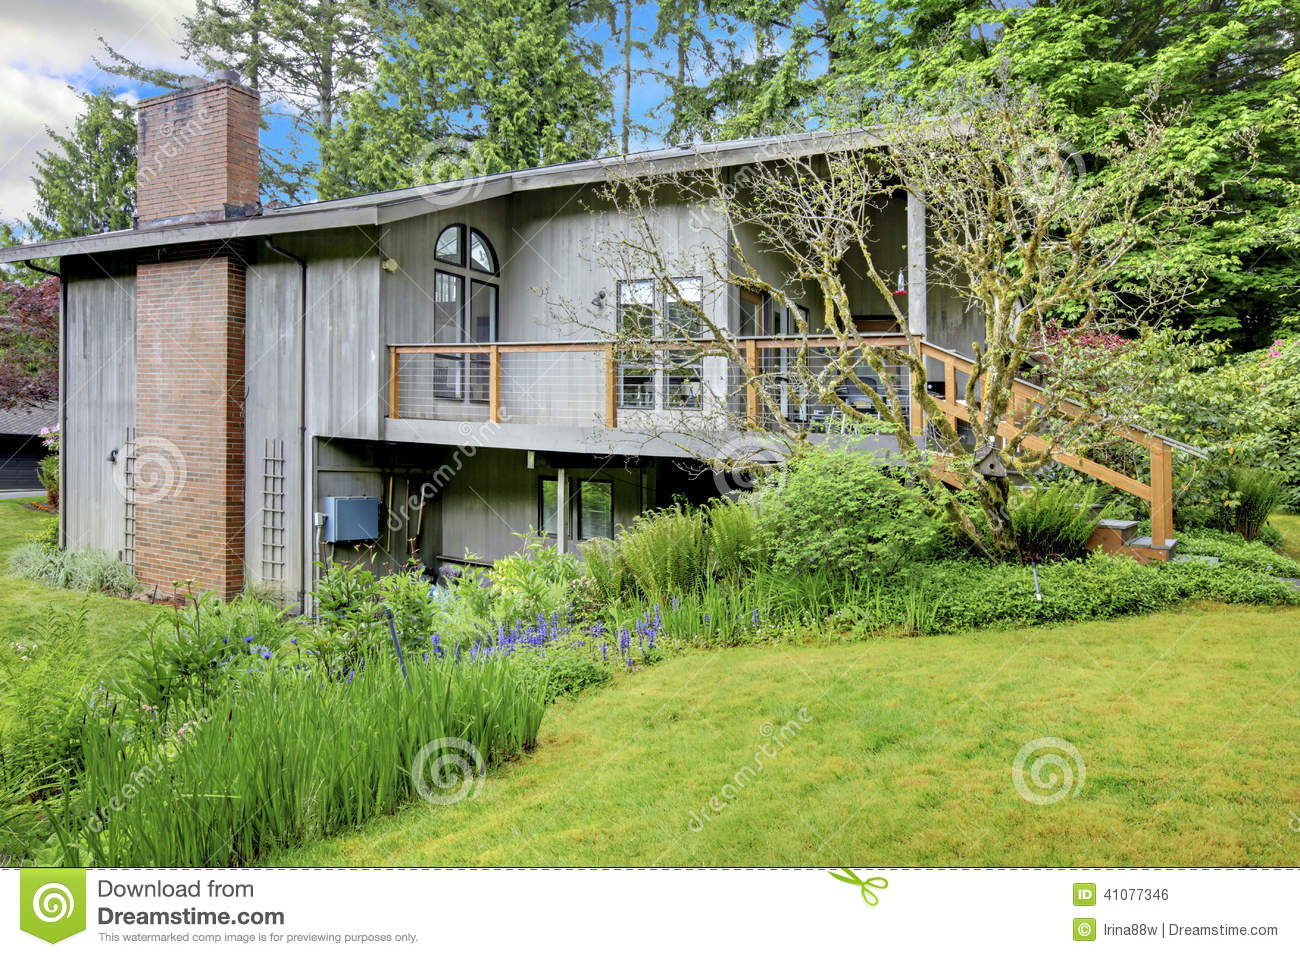 House With Chimney : House with brick chimney stock photo image of curb